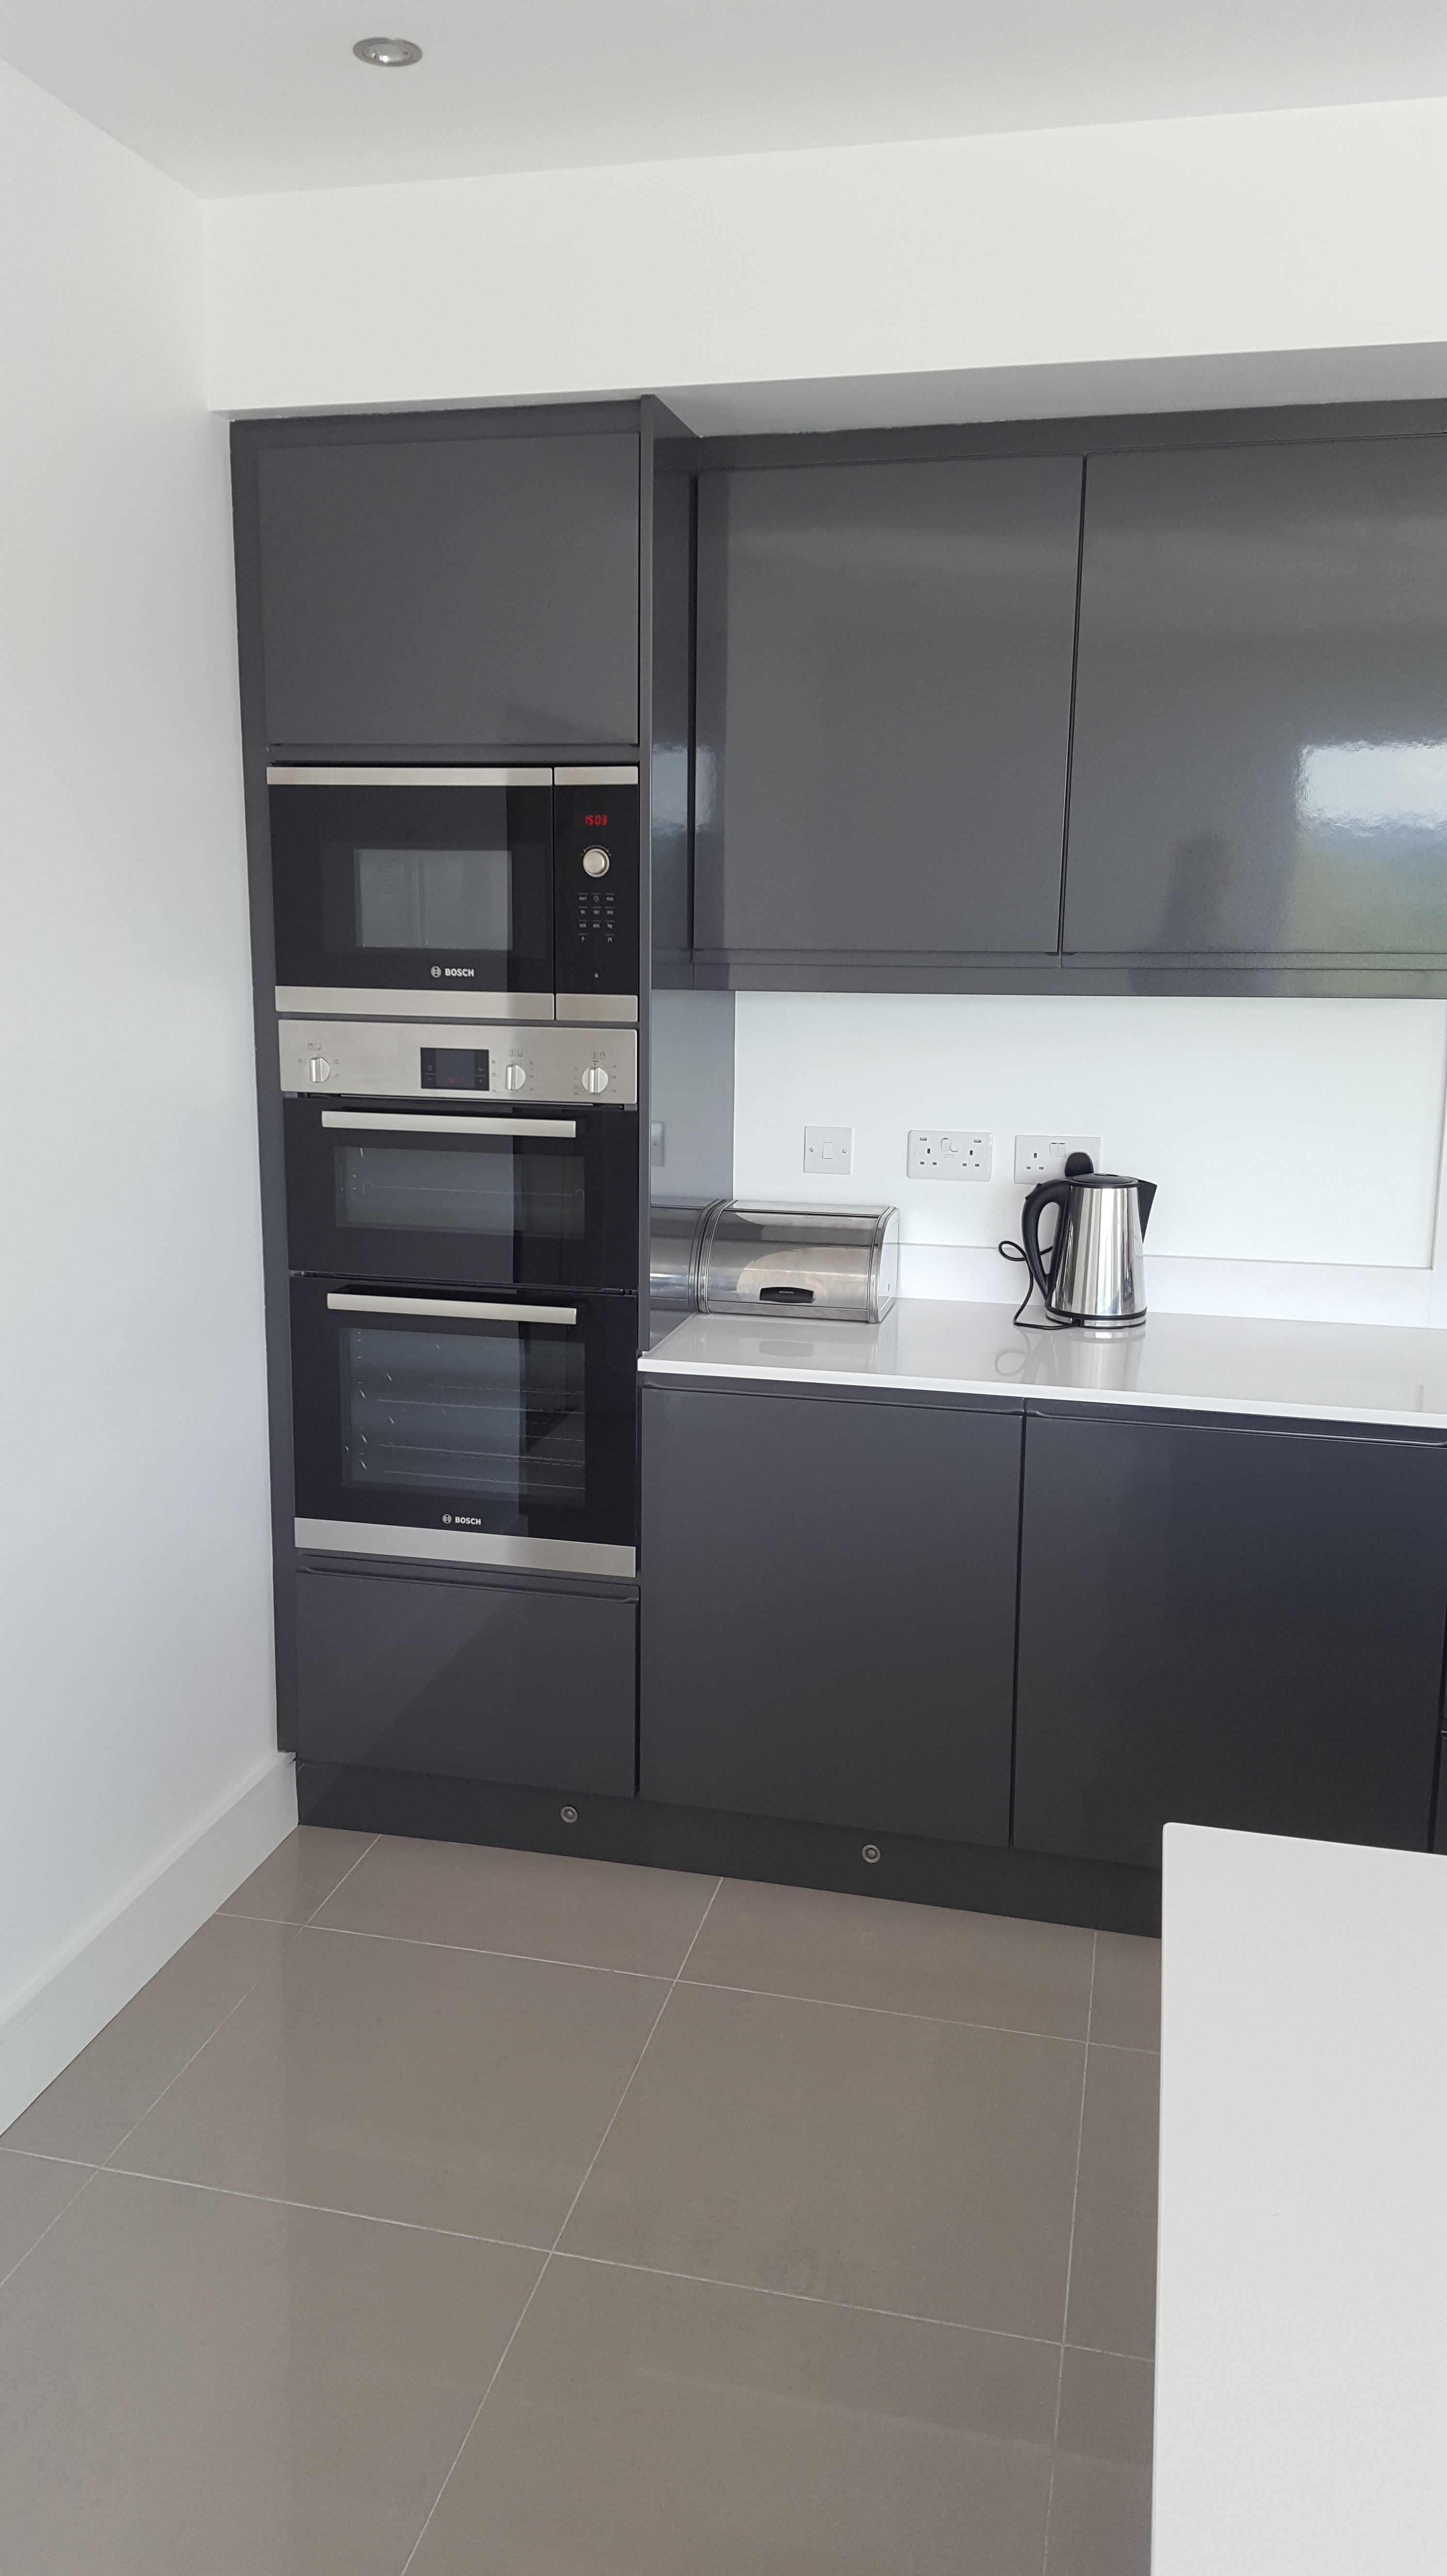 High Gloss Anthracite Handless Kitchen Karl Cullen